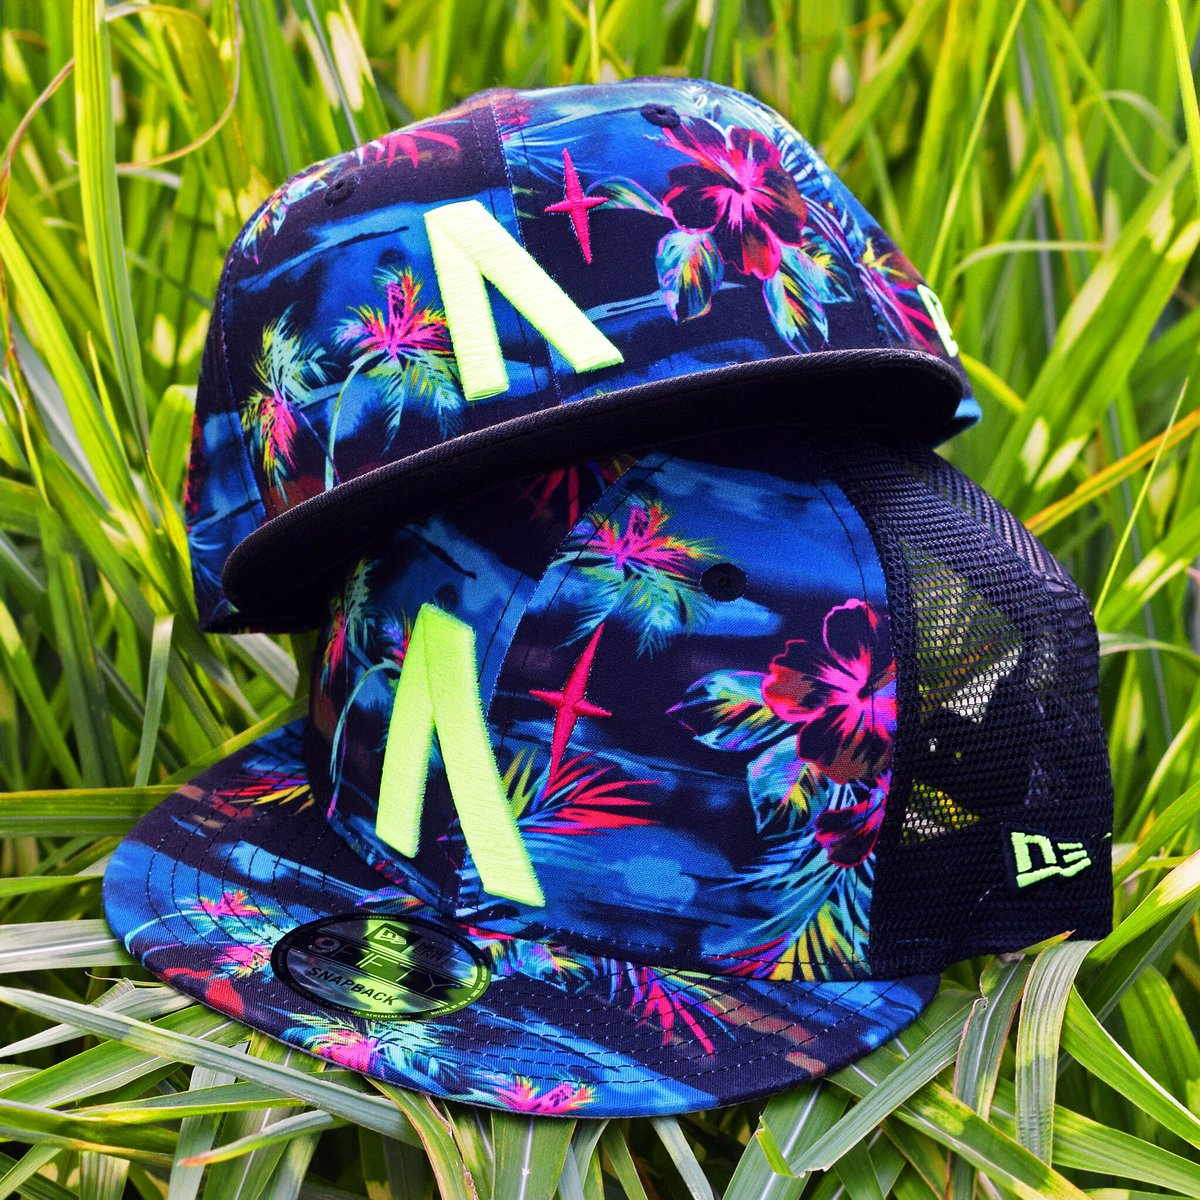 Tropical snapbacks are back - available in both lil' & big kids!  . Release Date: July 2nd, 2020  3:30pm EST | 3pm EST (VIP) . #NobleNorth #tropicalhat #floralhat #kidshats #kidssnapback #newera #neweracap #neweracanada #9fifty #9fiftysnapback #lidspic.twitter.com/zMR4Z0519F